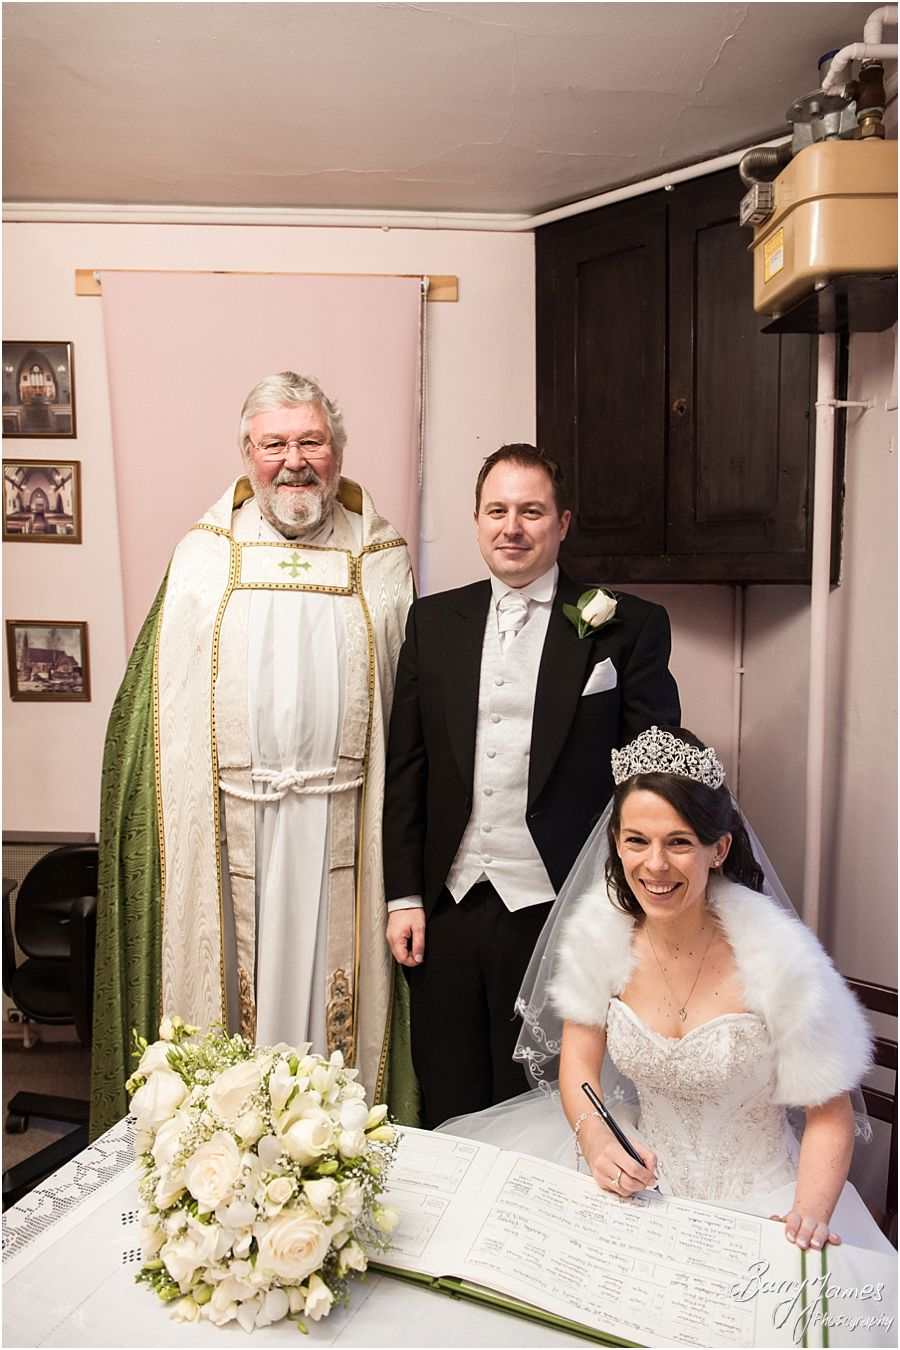 Reportage and creative wedding photography at St Pauls Church in Brewood by Stafford Wedding Photographers Barry James